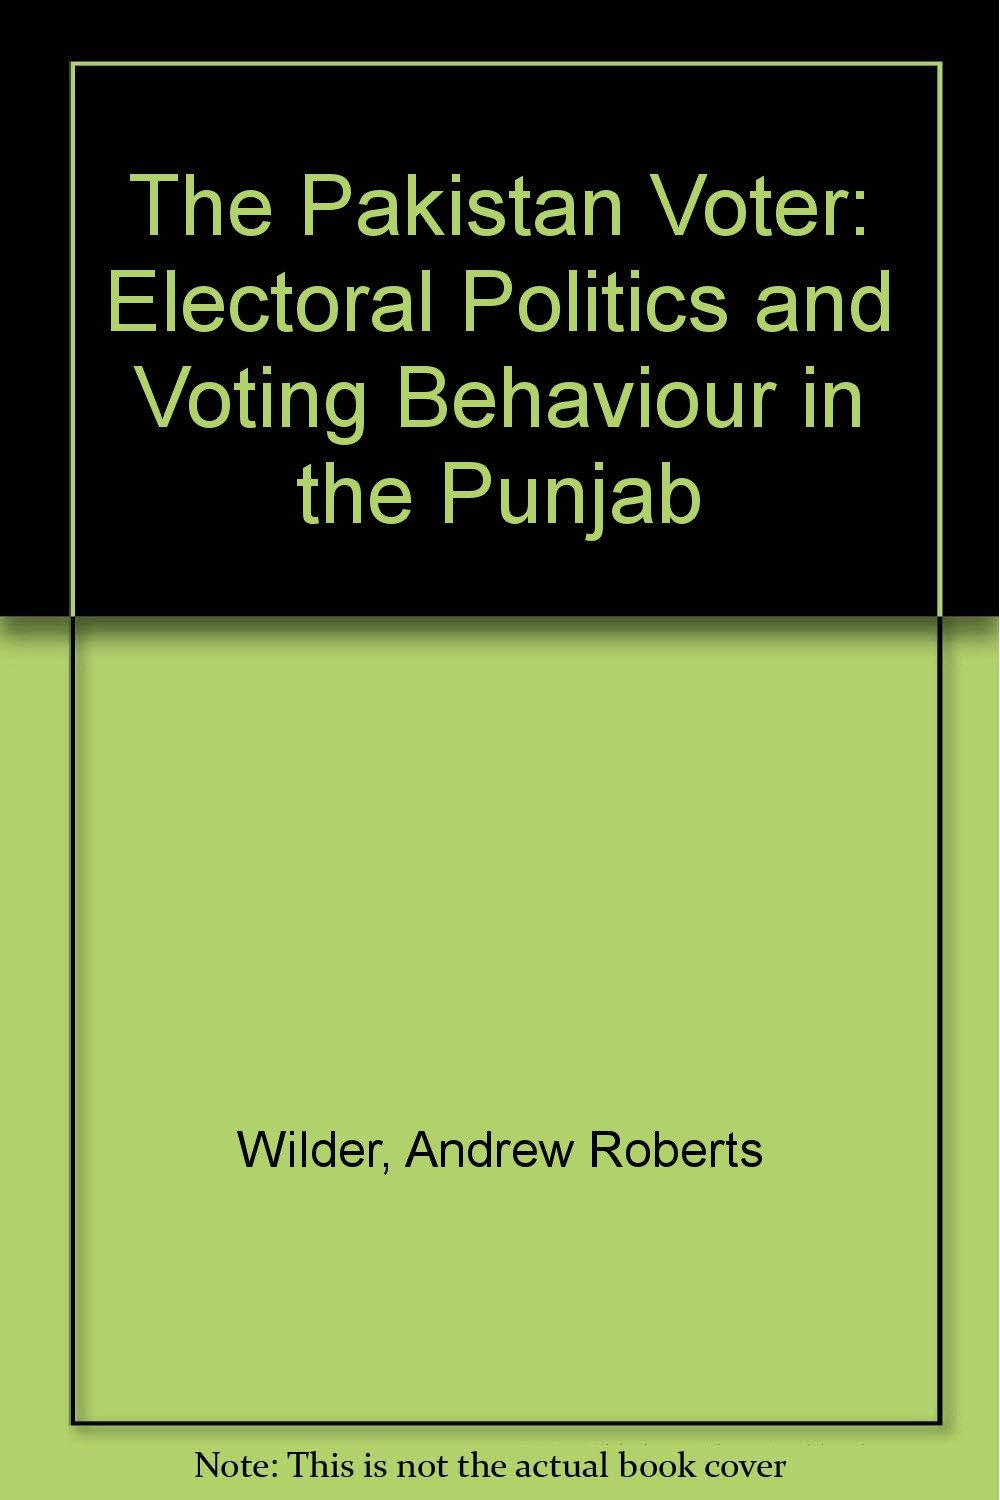 The Pakistan Voter: Electoral Politics And Voting Behaviour In The Punjab: Andrew  Roberts Wilder: 9780195790726: Amazon: Books